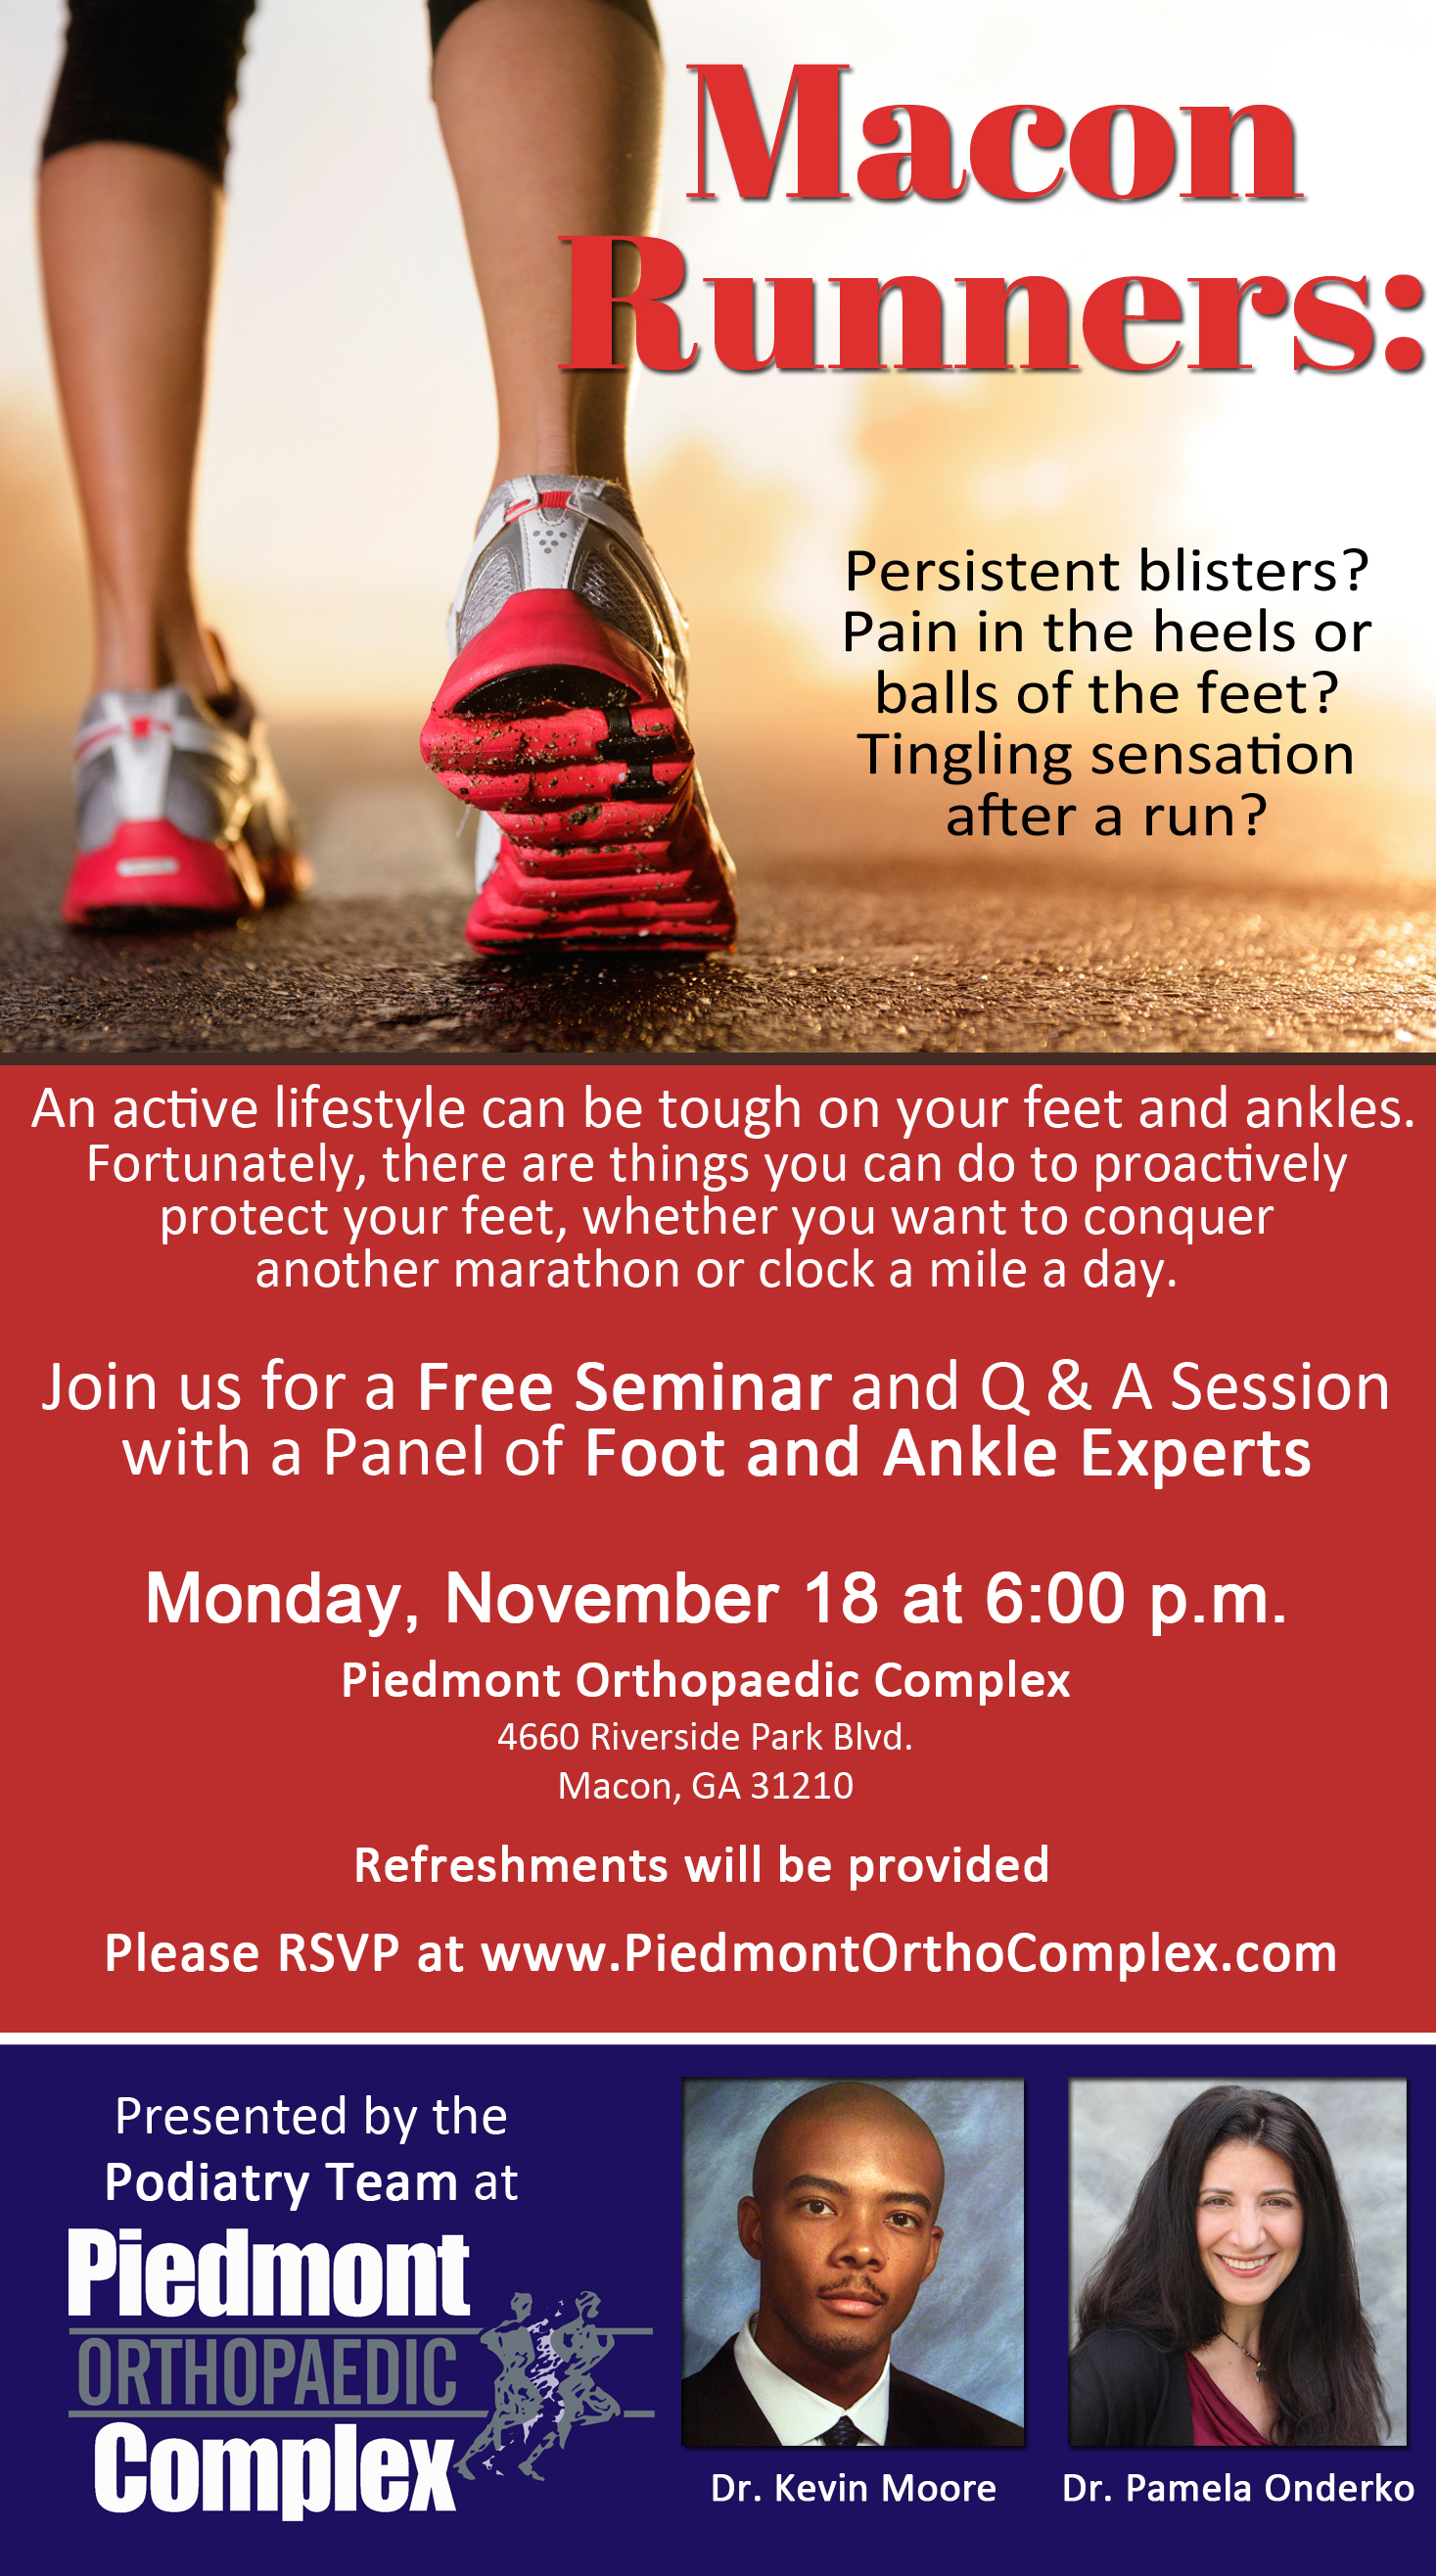 Foot Care for Runners - Monday, November 18 at 6 pm at Piedmont Ortho Complex